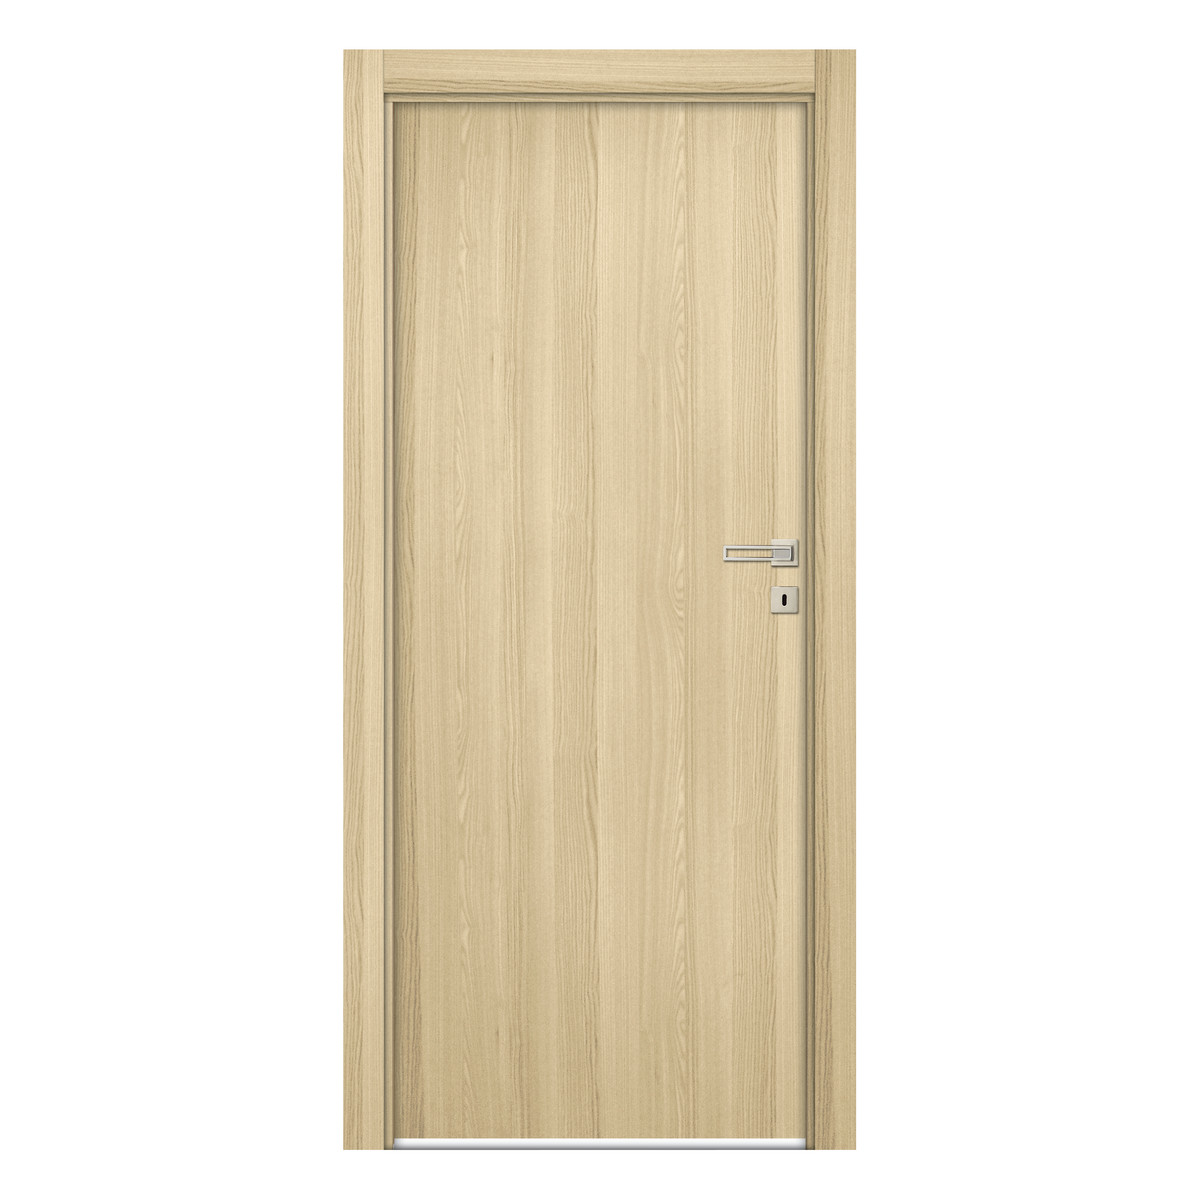 Porta da interno battente young rovere sbiancato 80 x h for Porta finestra leroy merlin